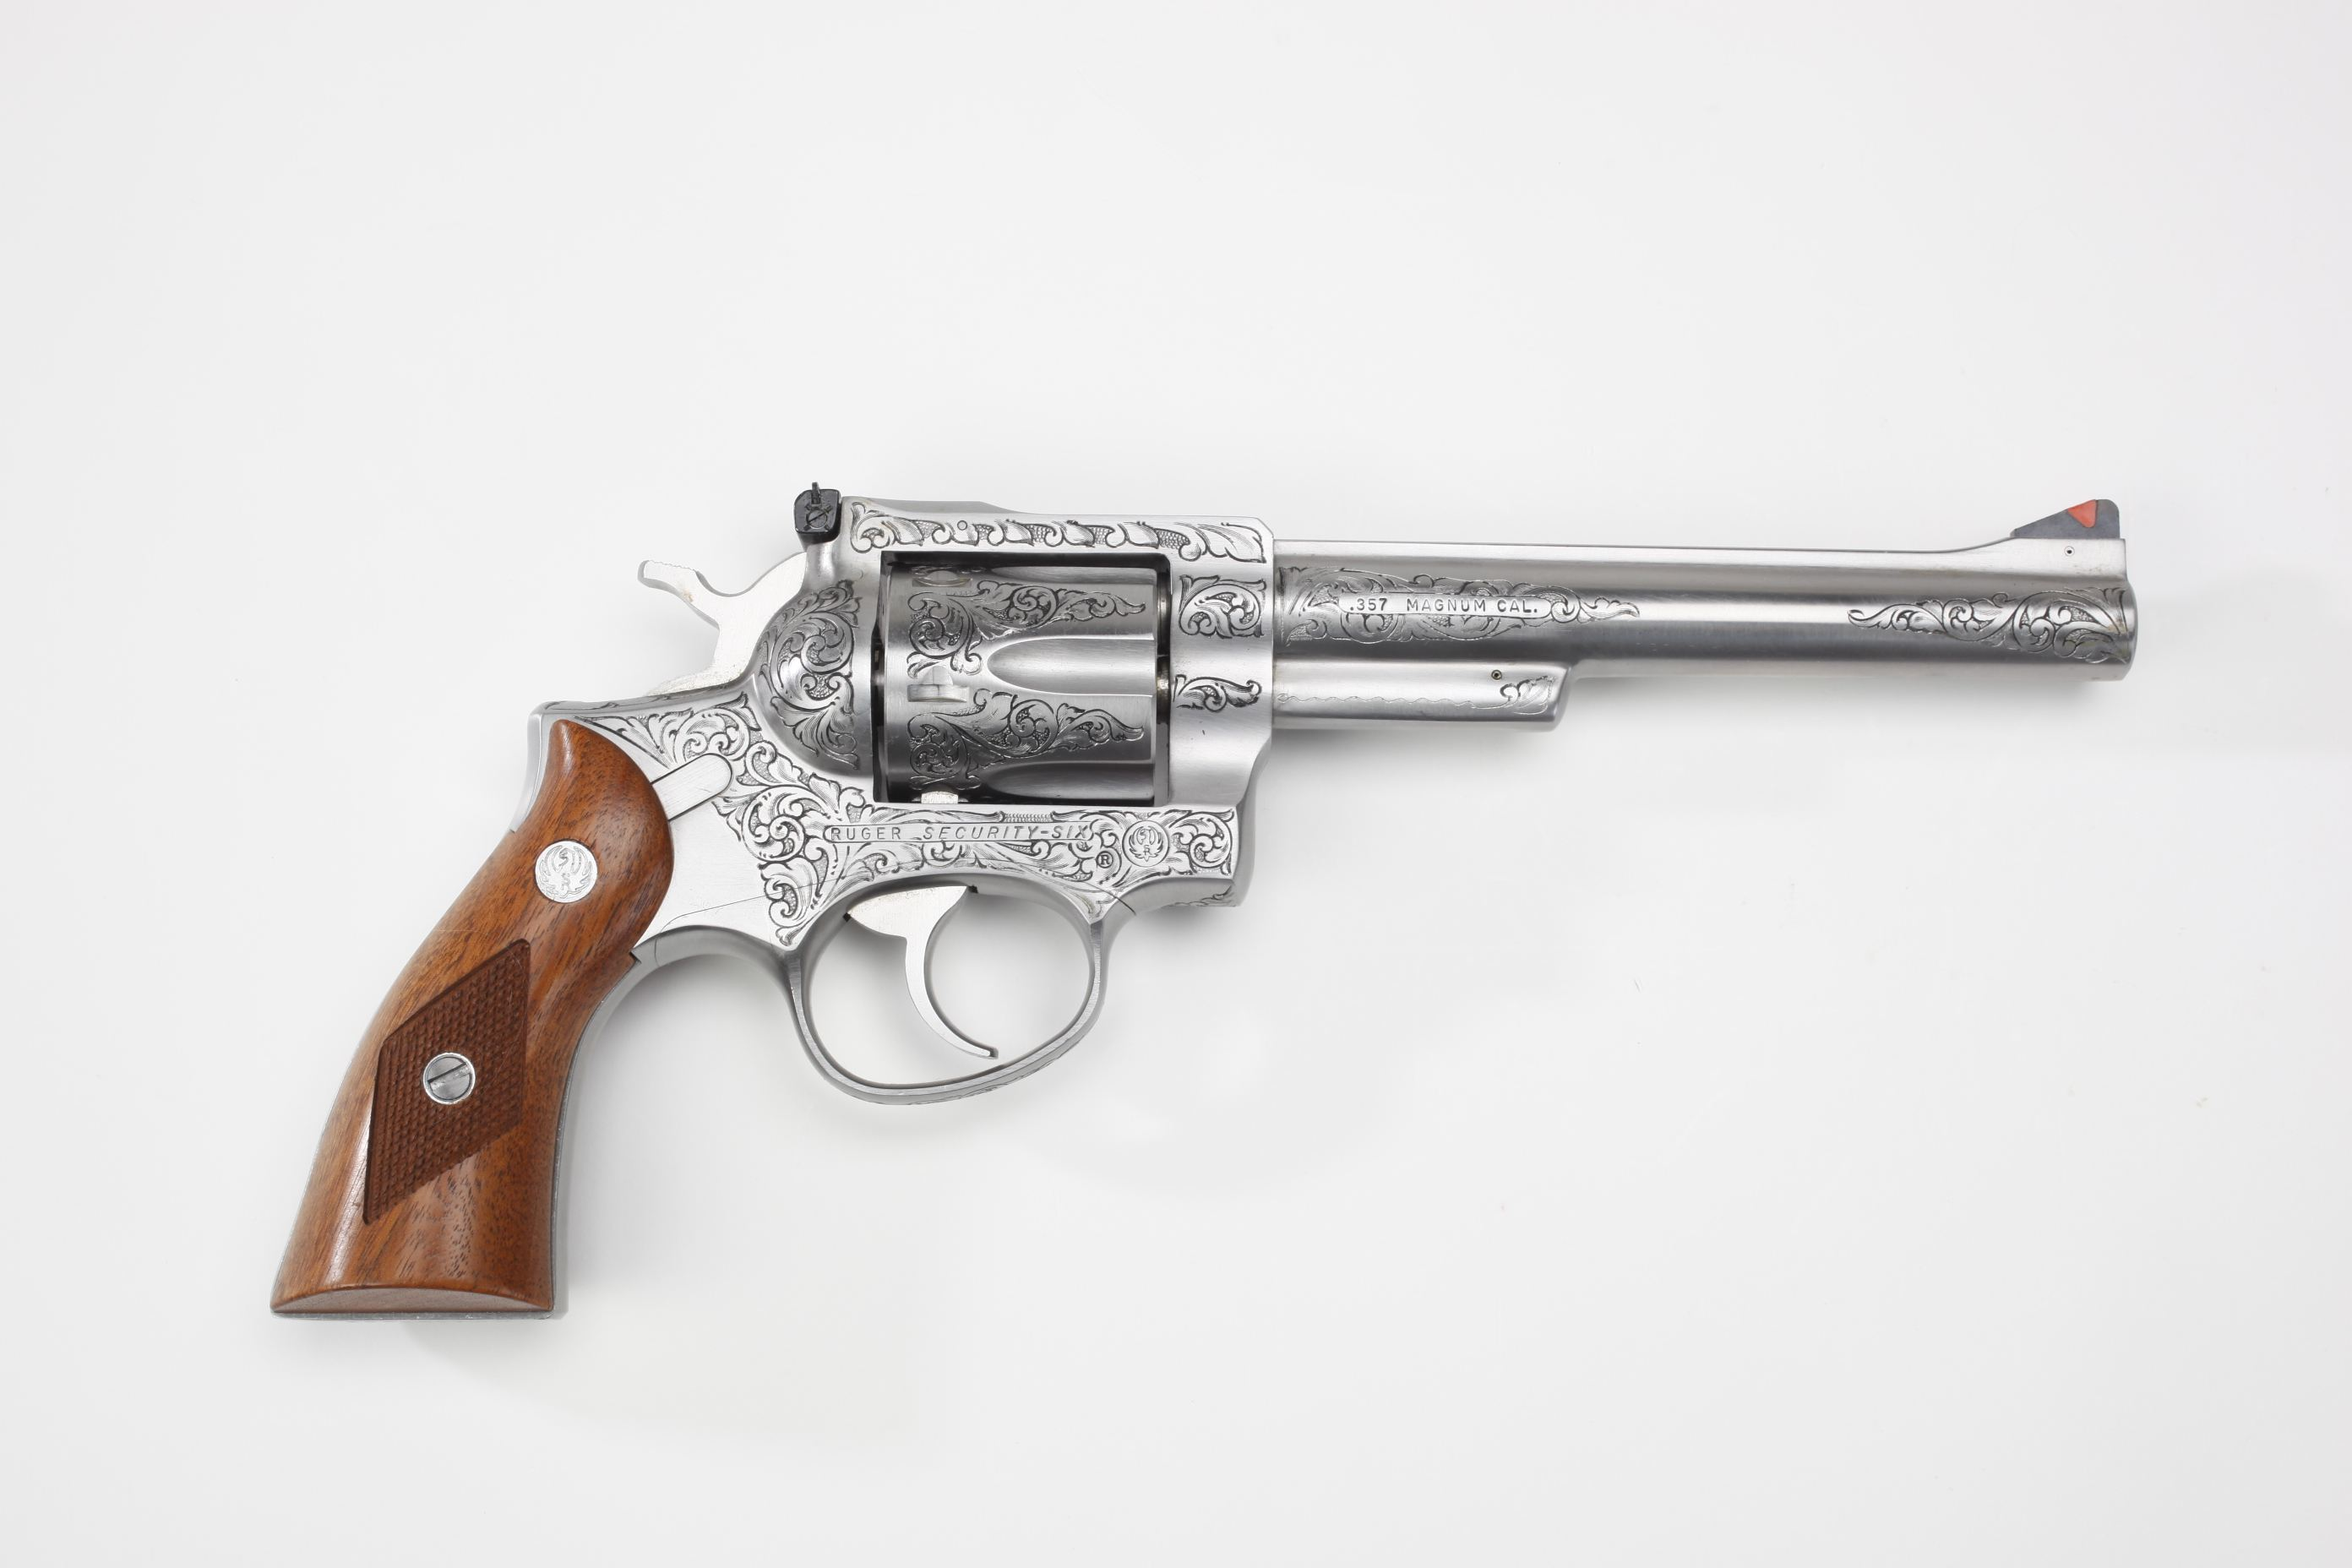 Sturm, Ruger & Co. Security-Six Double-Action Revolver Engraved